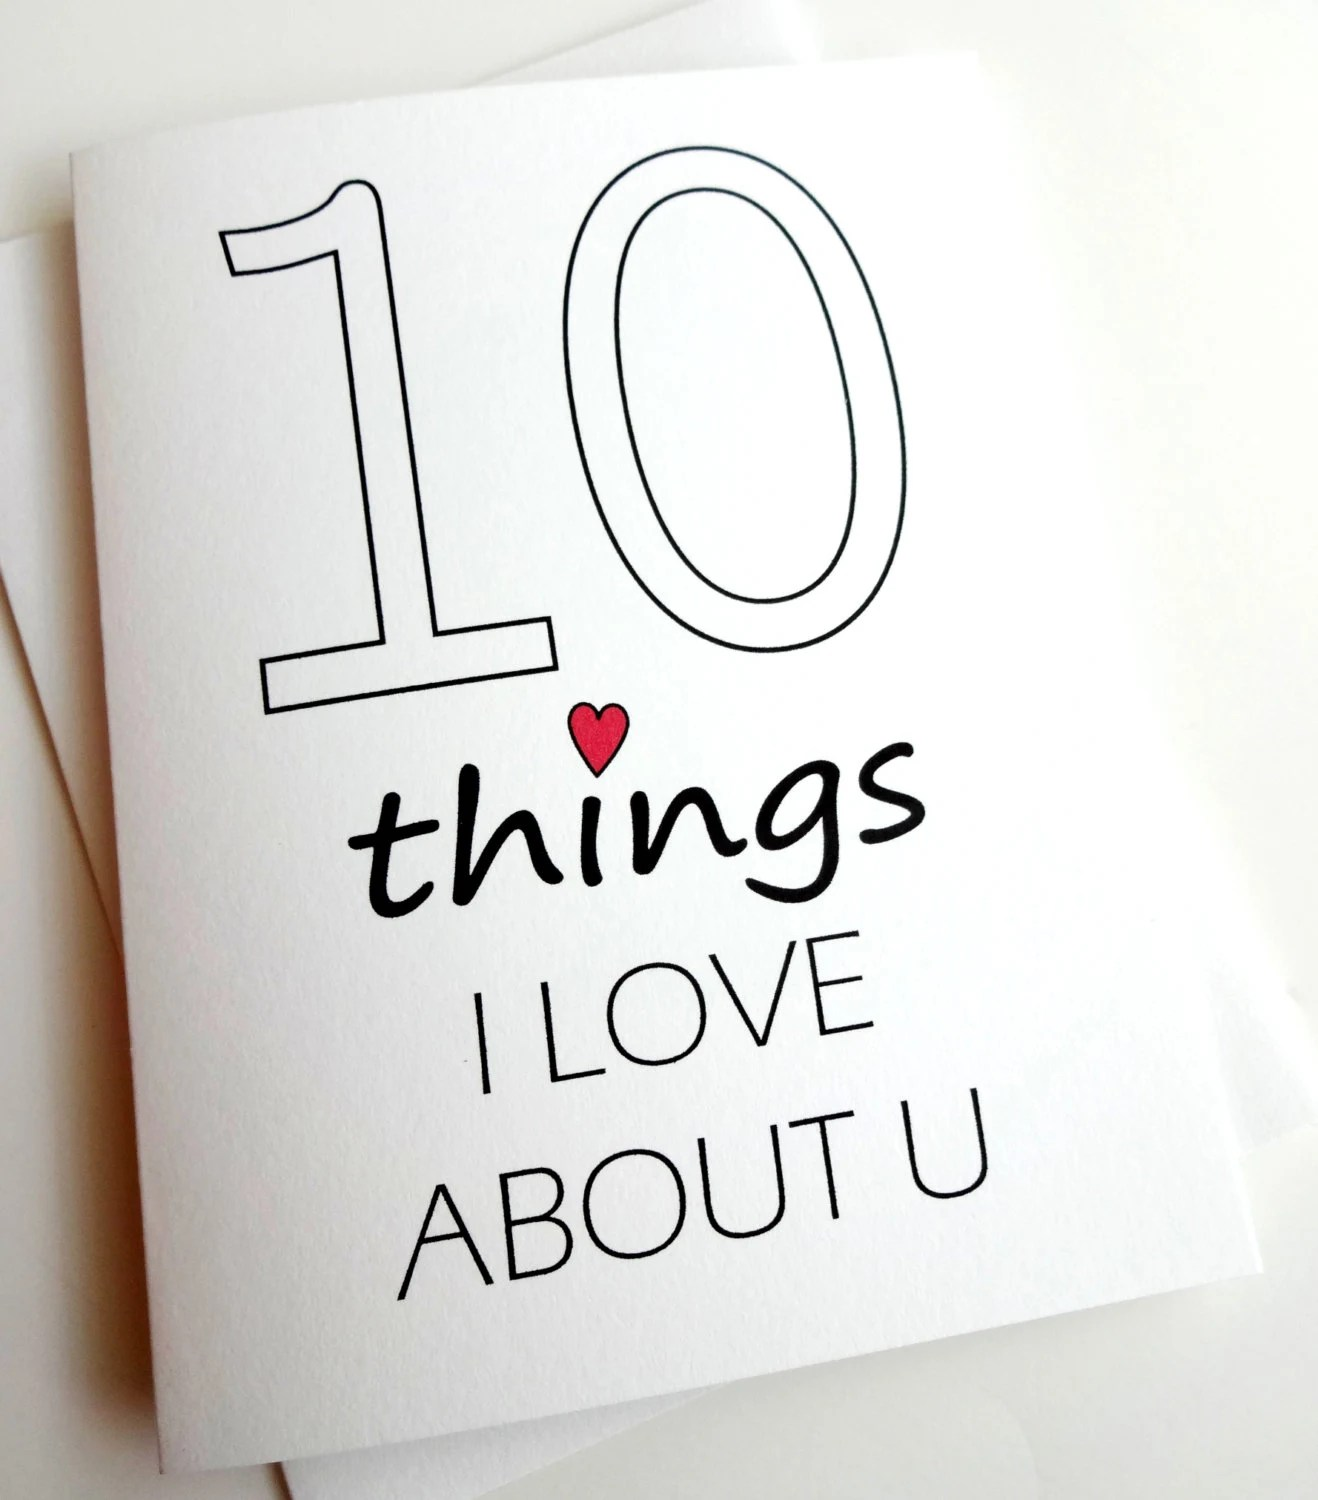 10 Things I Love About You Card Anniversary Birthday